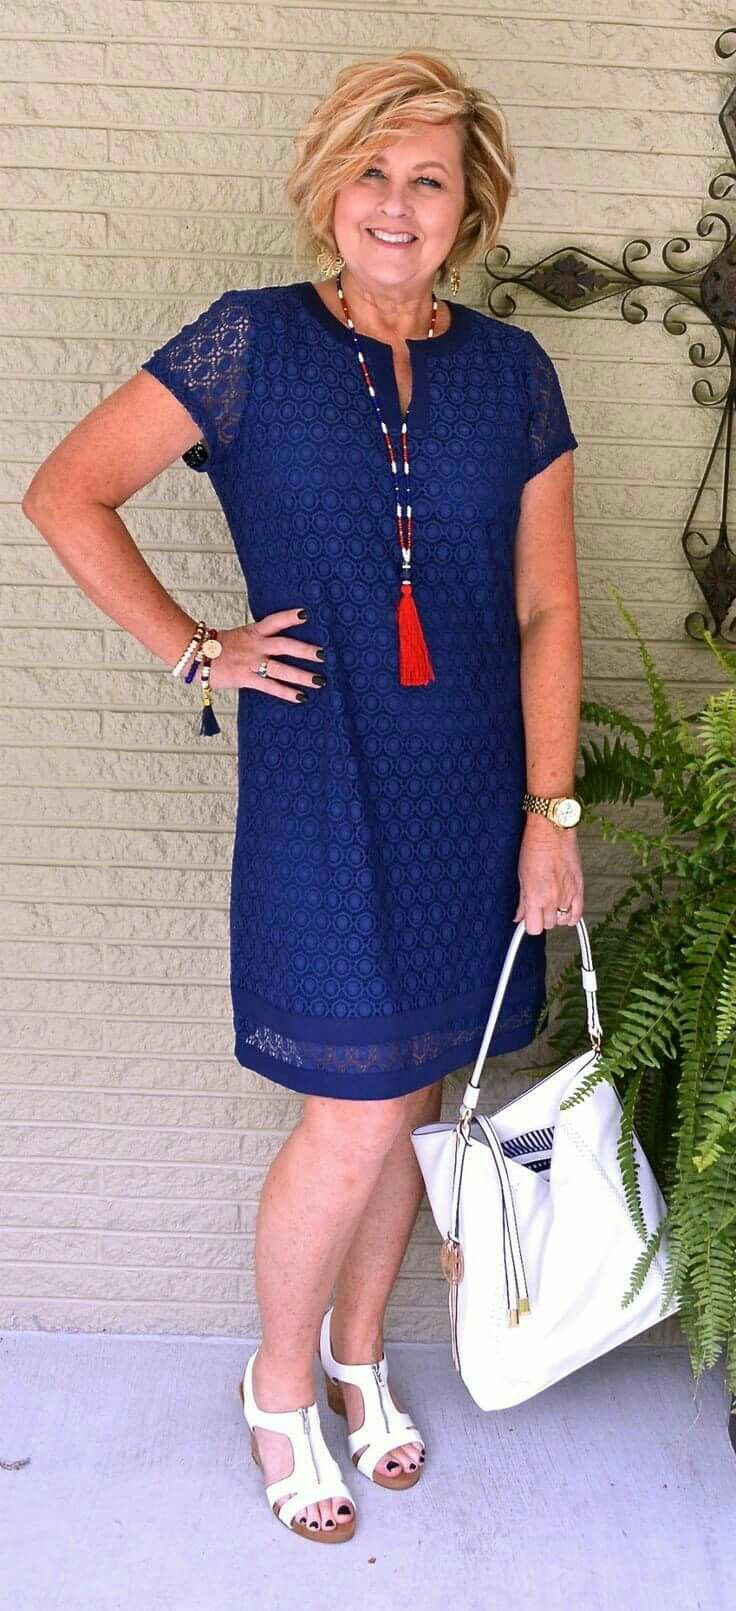 Simple lace dress styles  Simple lace dress with knock out accessories This woman has style